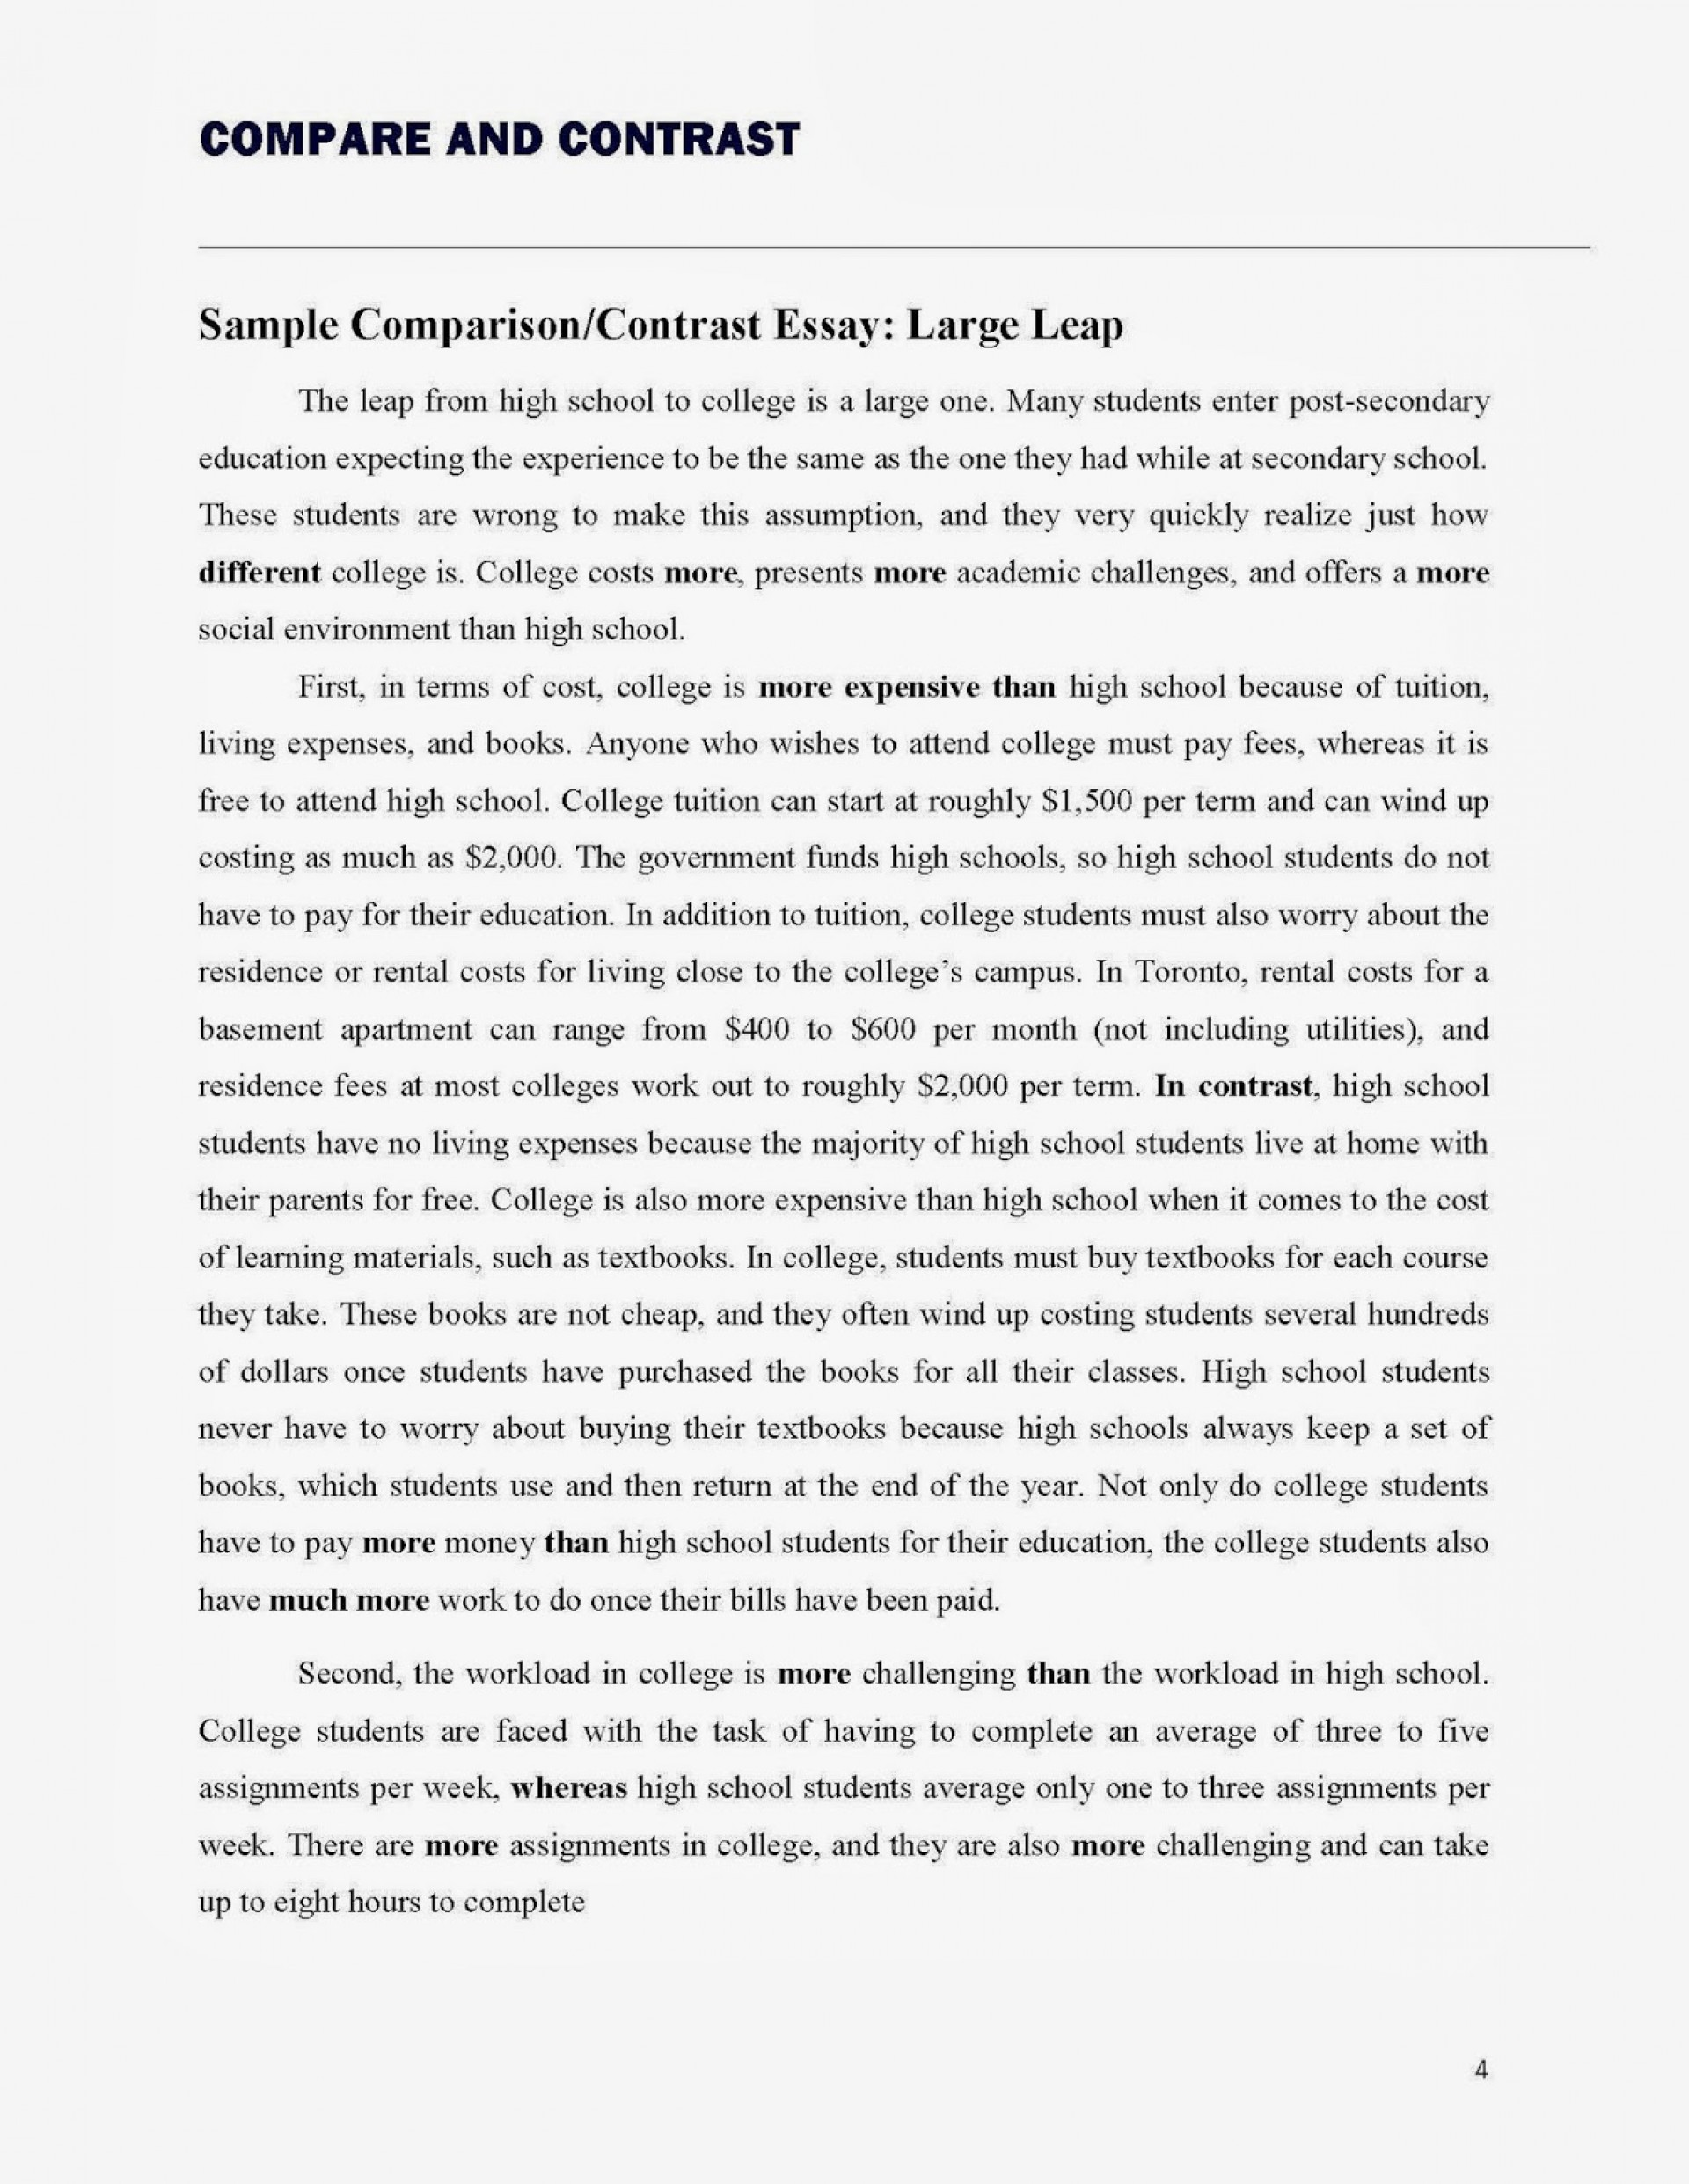 005 Compare And Contrast Essay Introduction Example Compare2band2bcontrast2bessay Page 4 Stirring Sample 1920